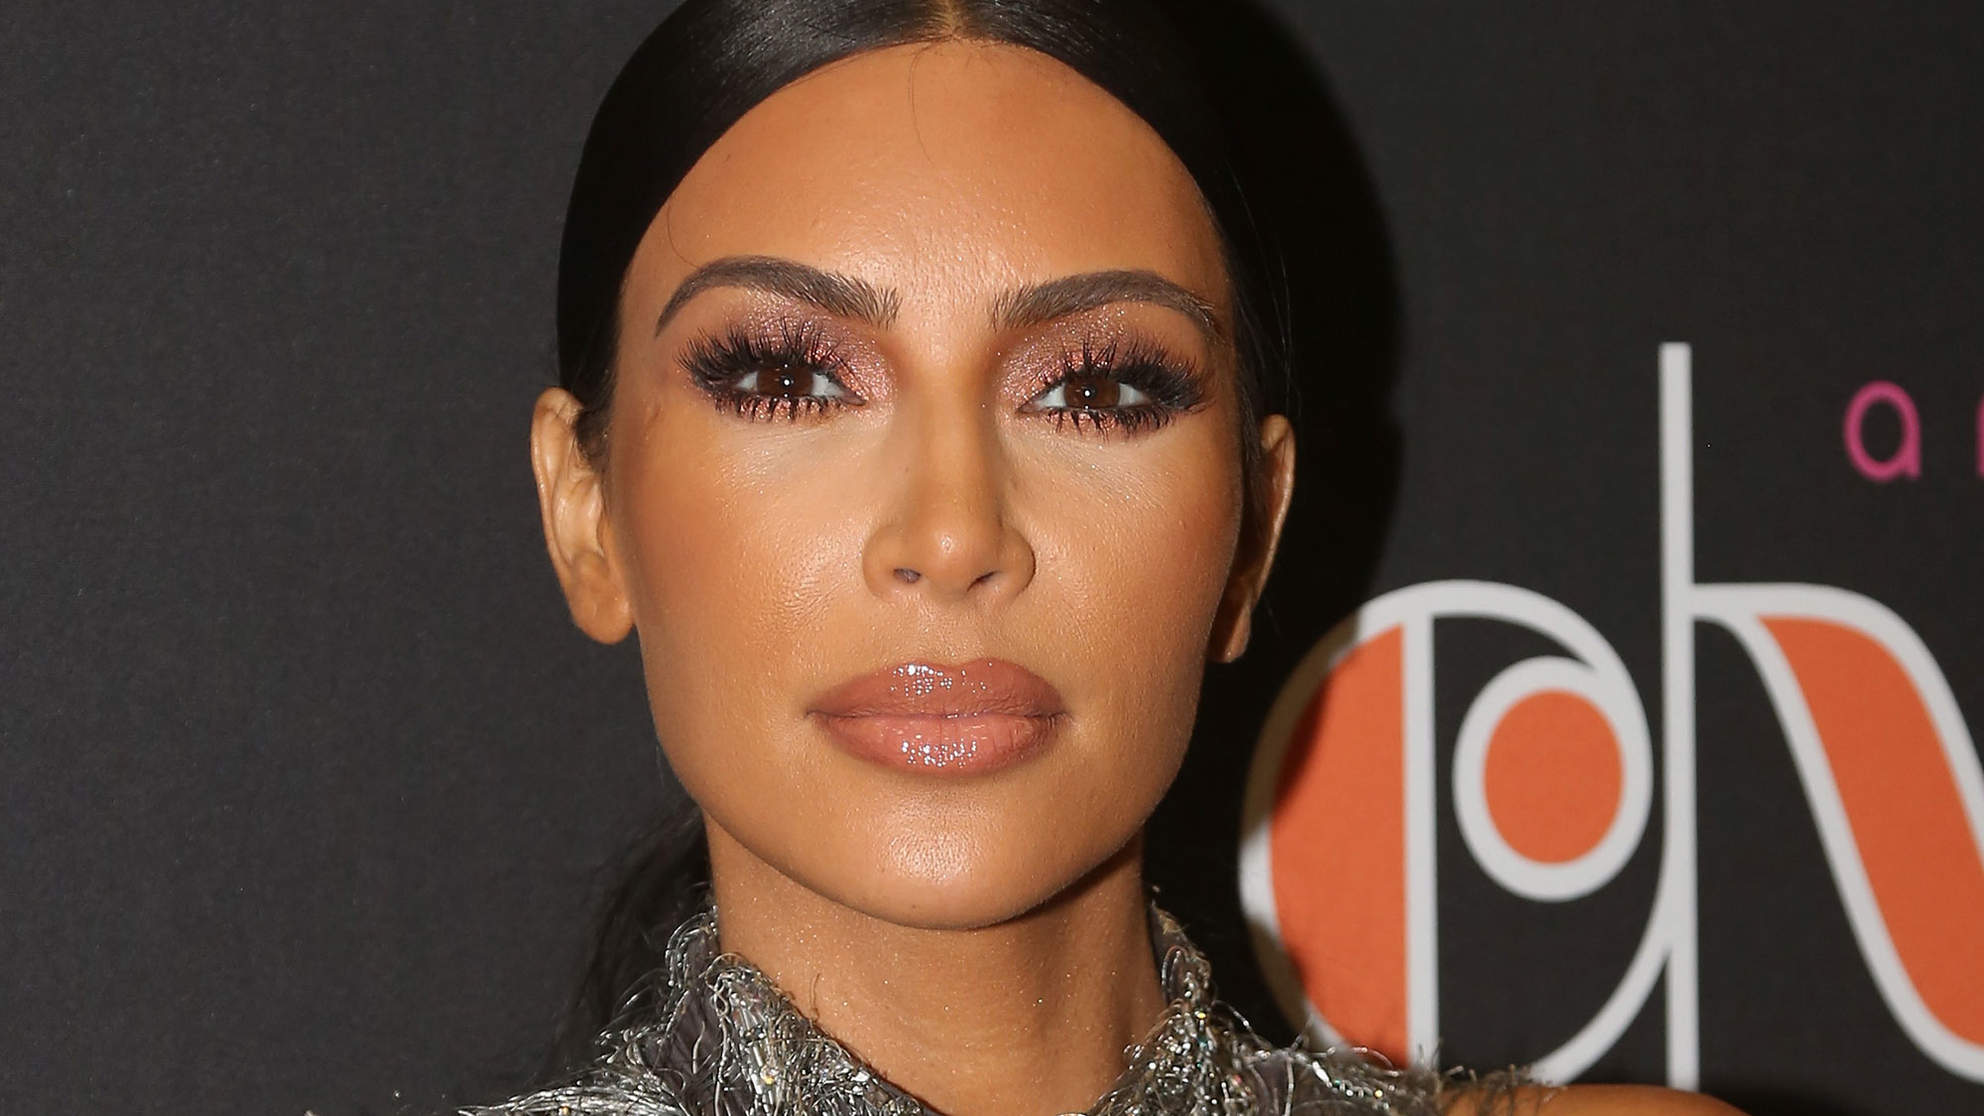 The Surprising Way Kim Kardashian Plans to De-Stress at Her Baby Shower